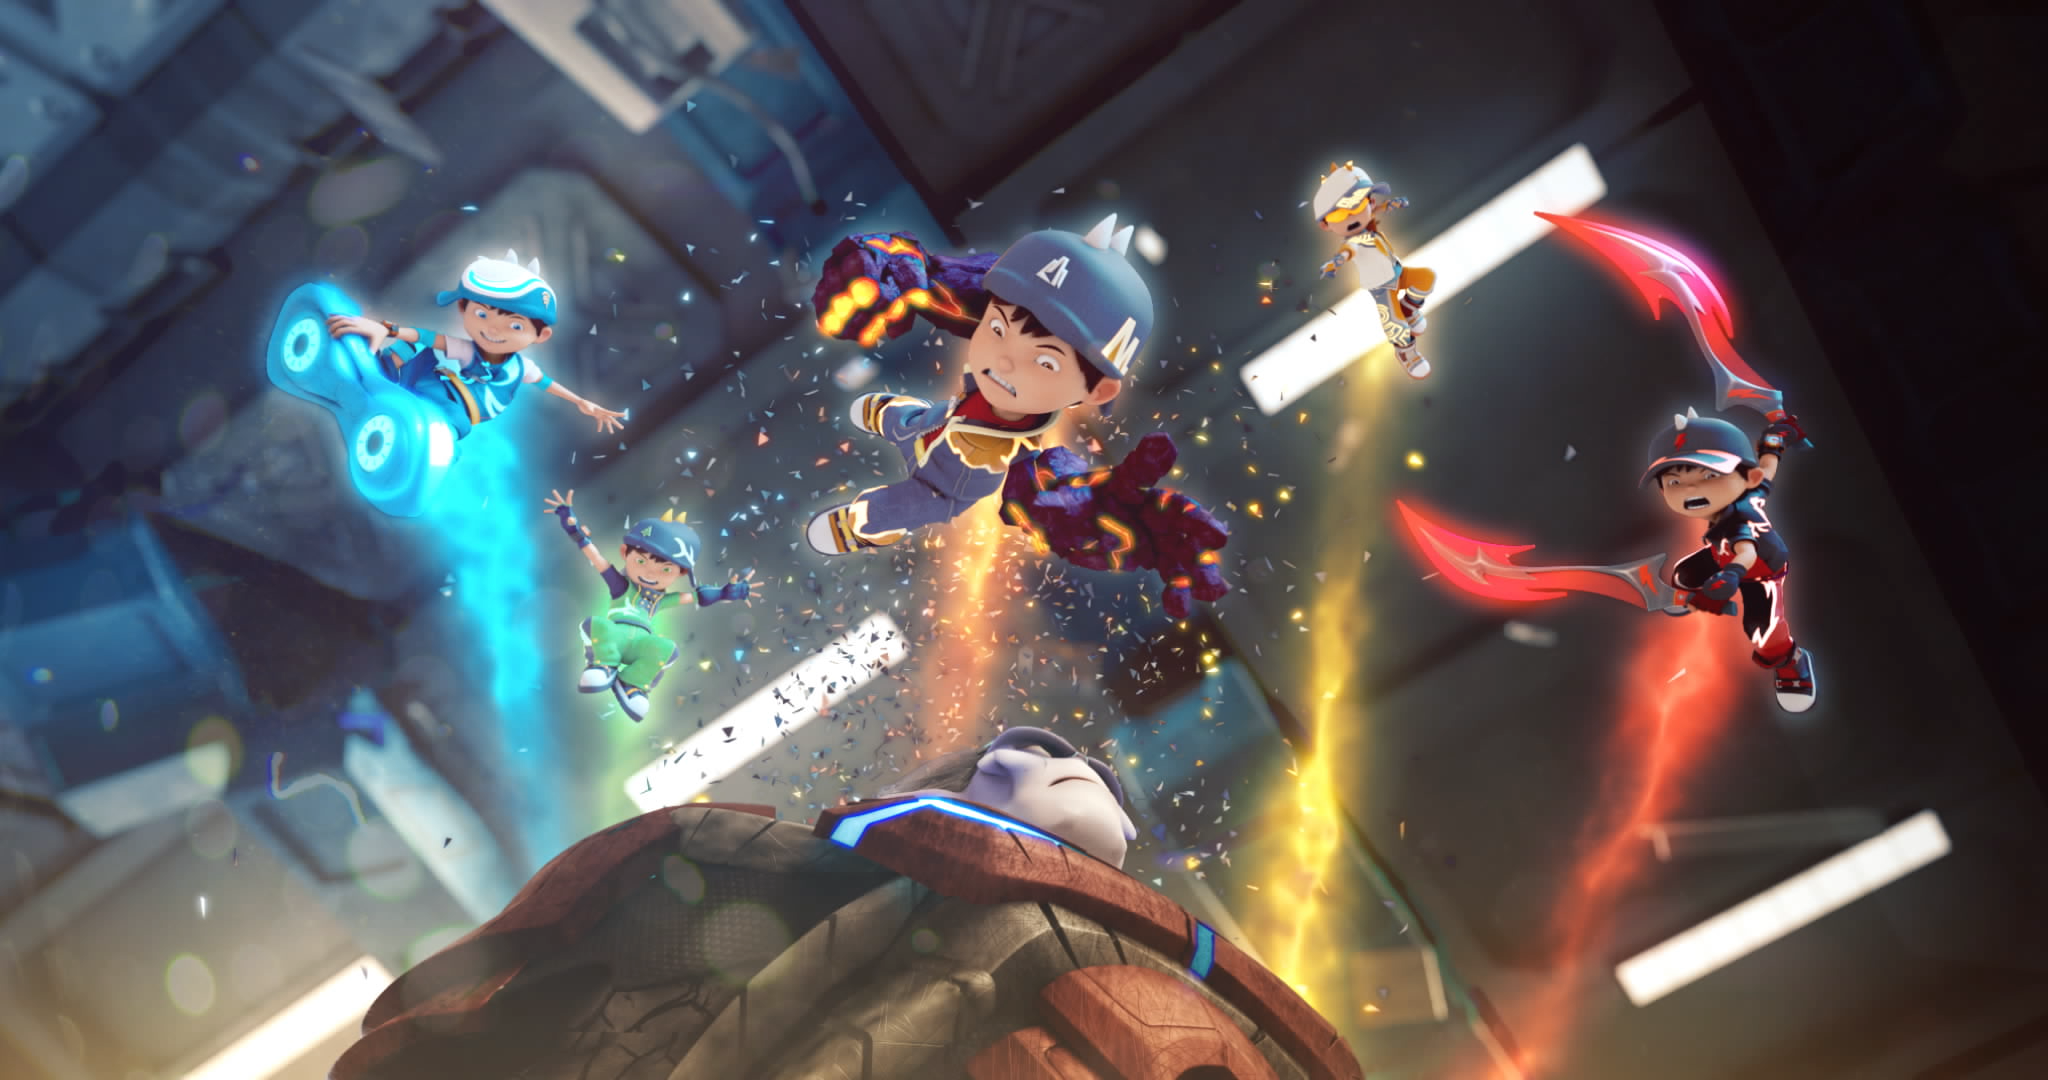 BoBoiBoy Movie 2 To Be Released In 5 Countries With Much